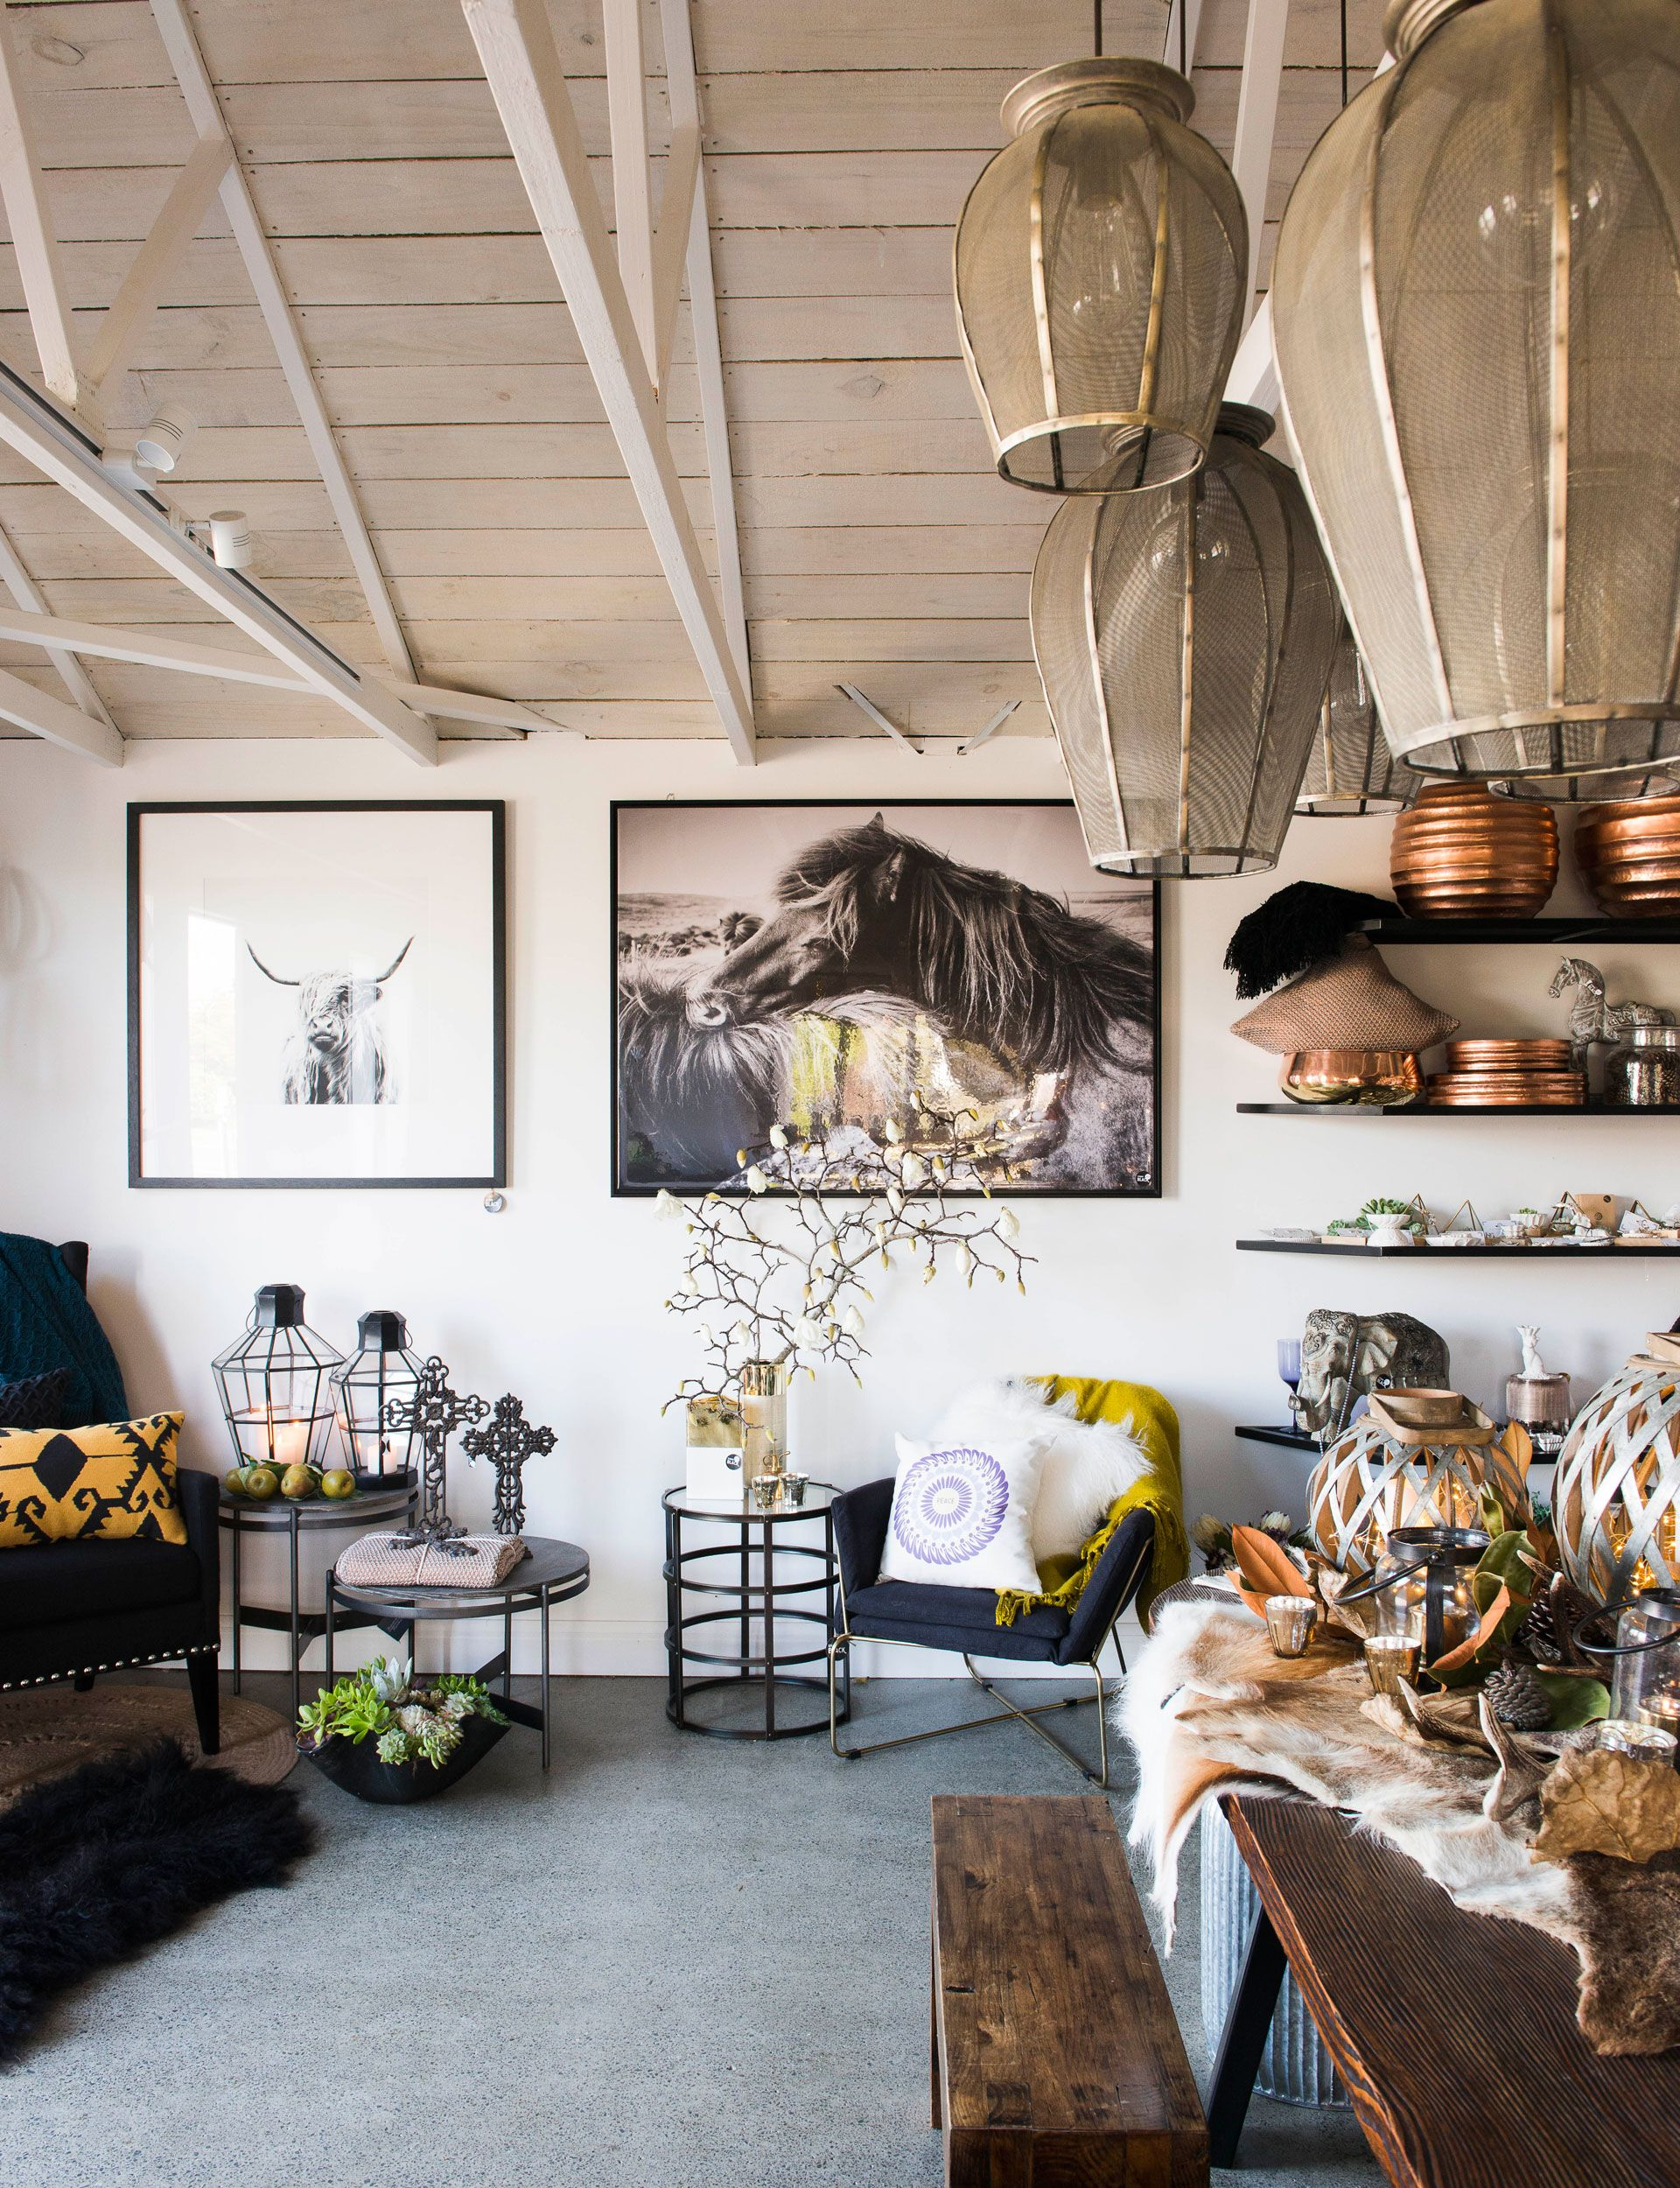 An inside look at the boutique design and homeware store studio